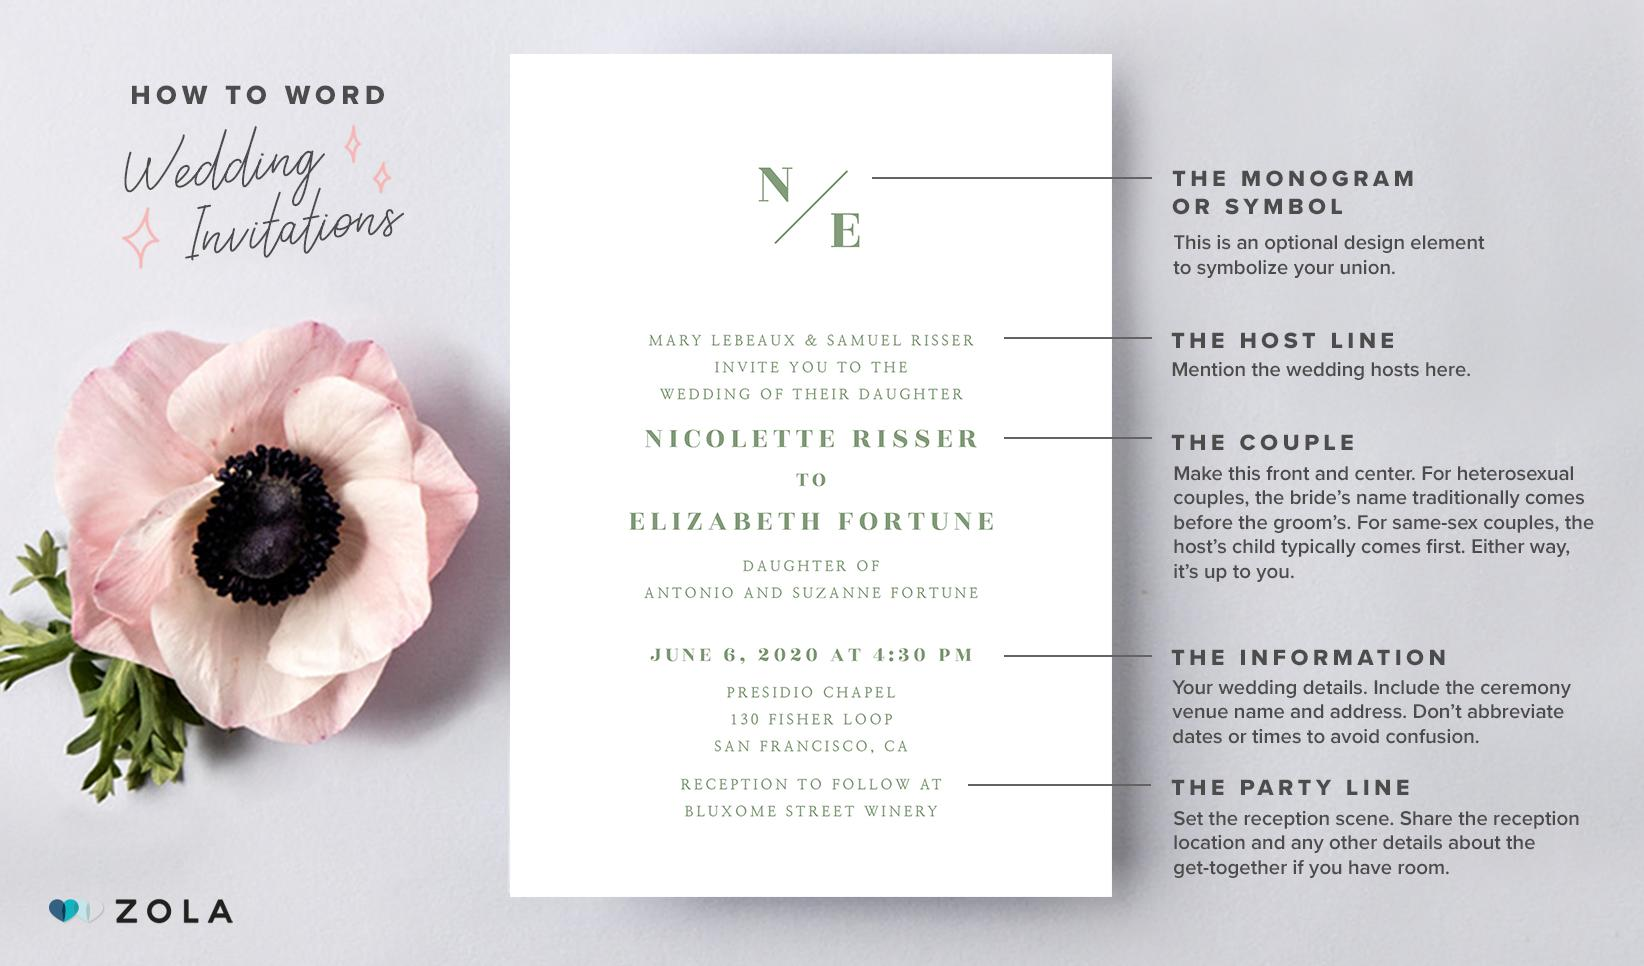 Wording Of Wedding Invitations: How To Word Wedding Invitations